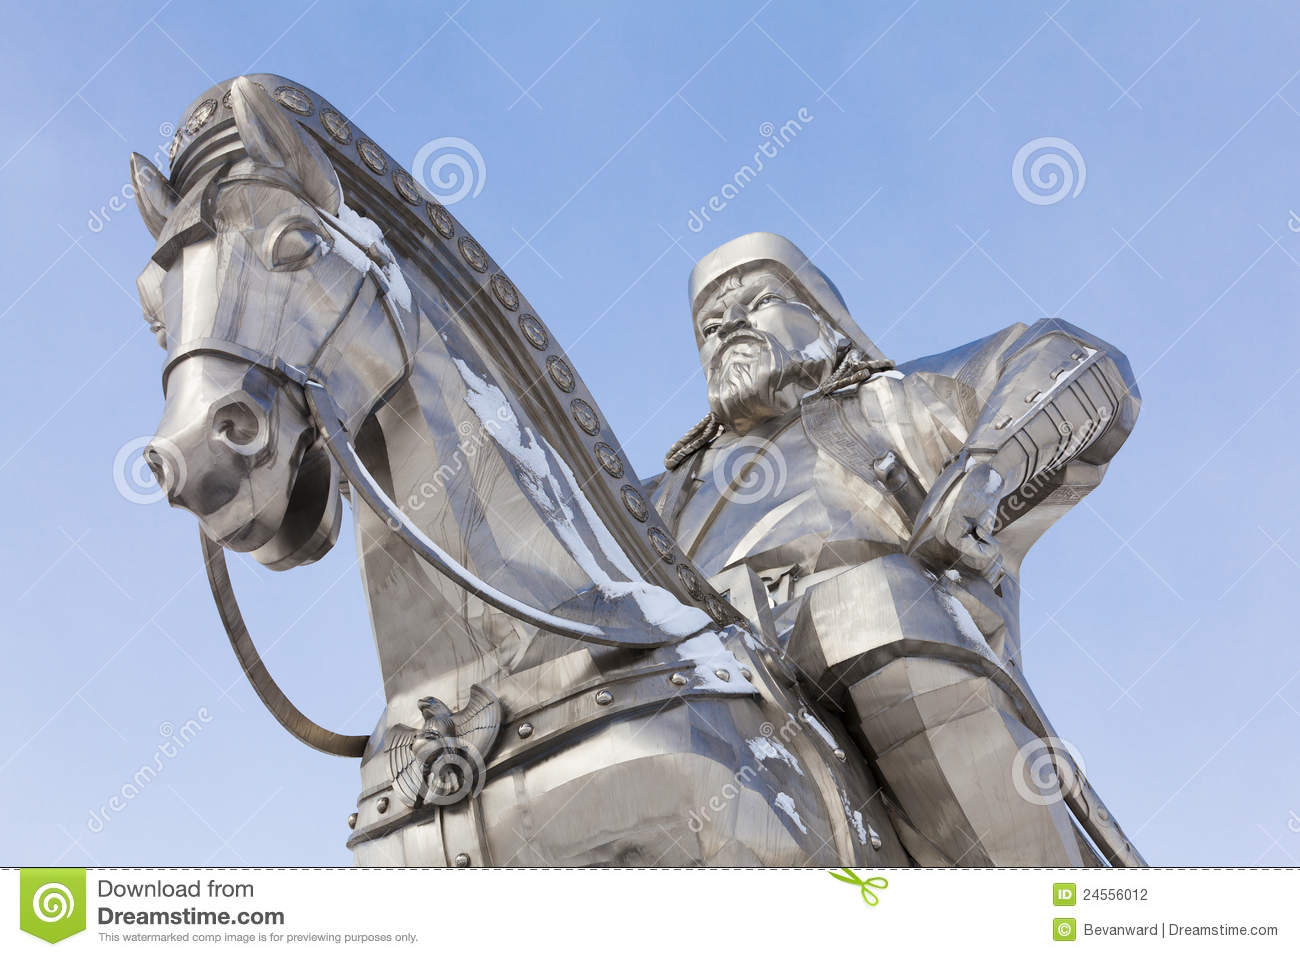 Closeup of sculpture of Genghis Khan and horse